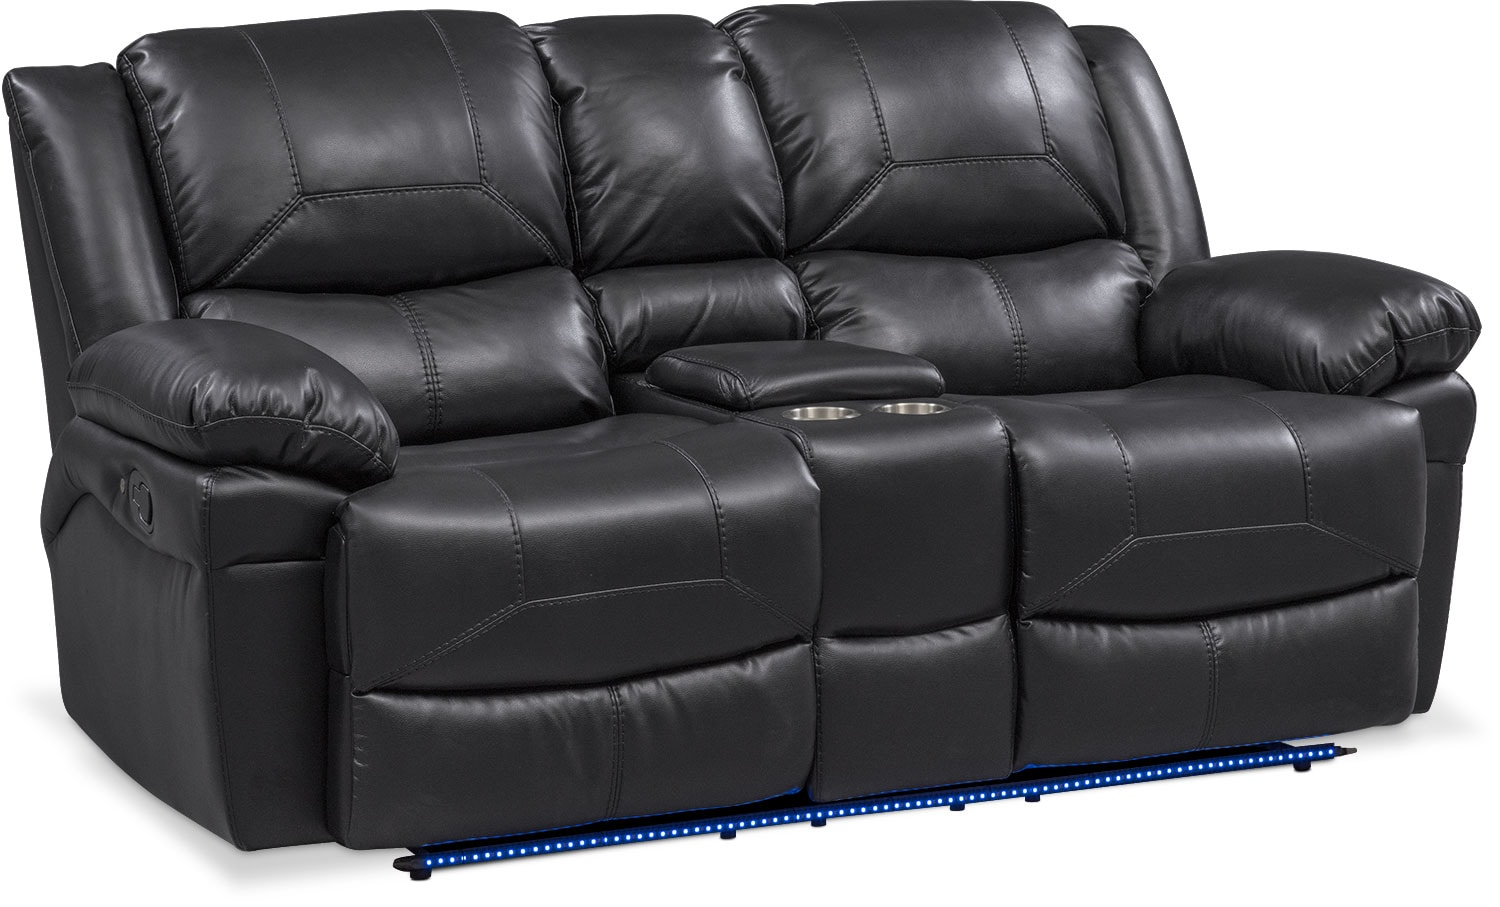 Monza Manual Reclining Loveseat With Console Black